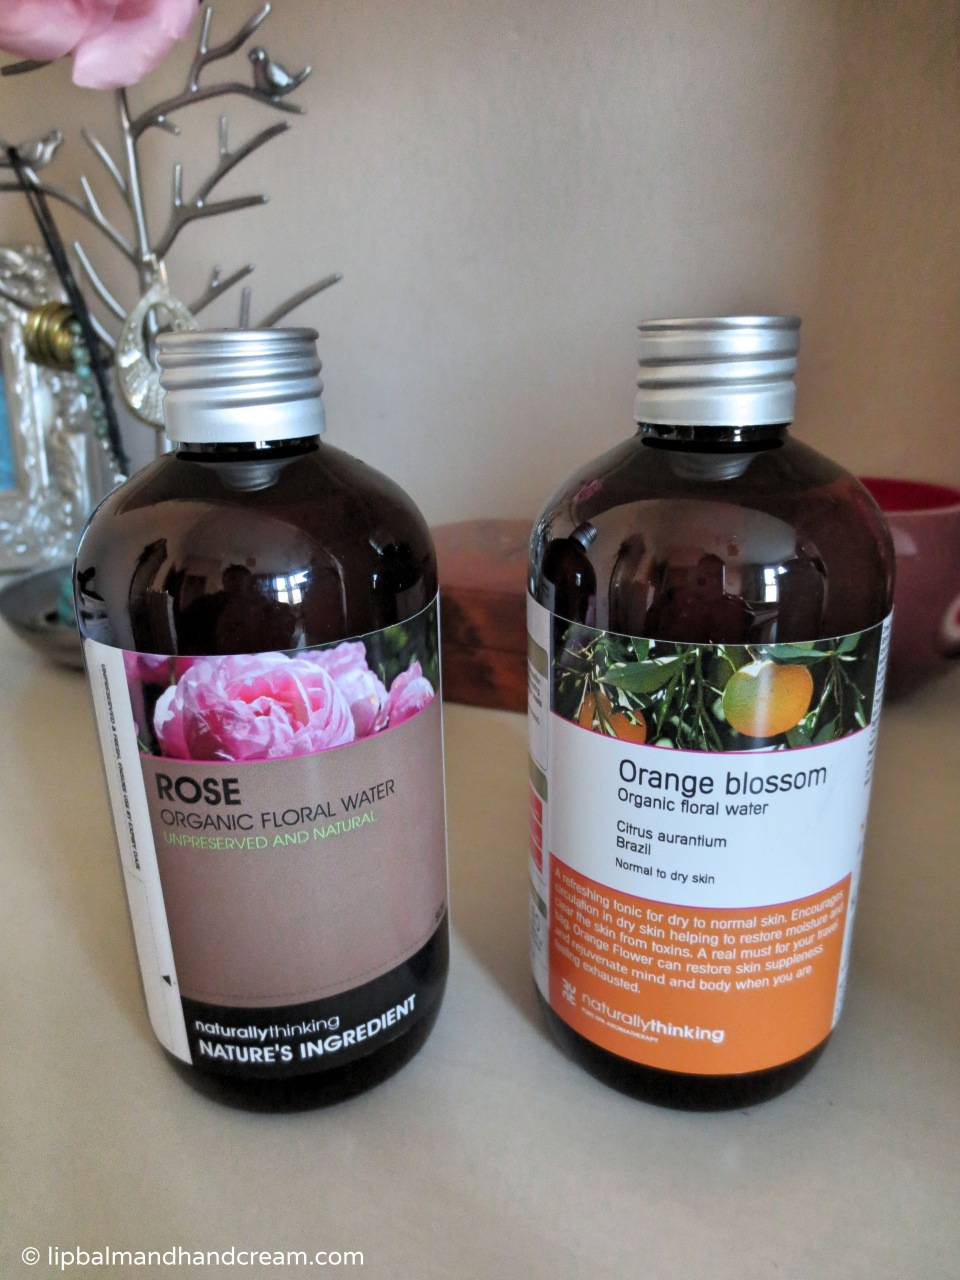 Natural toner made of rose and orange floral waters